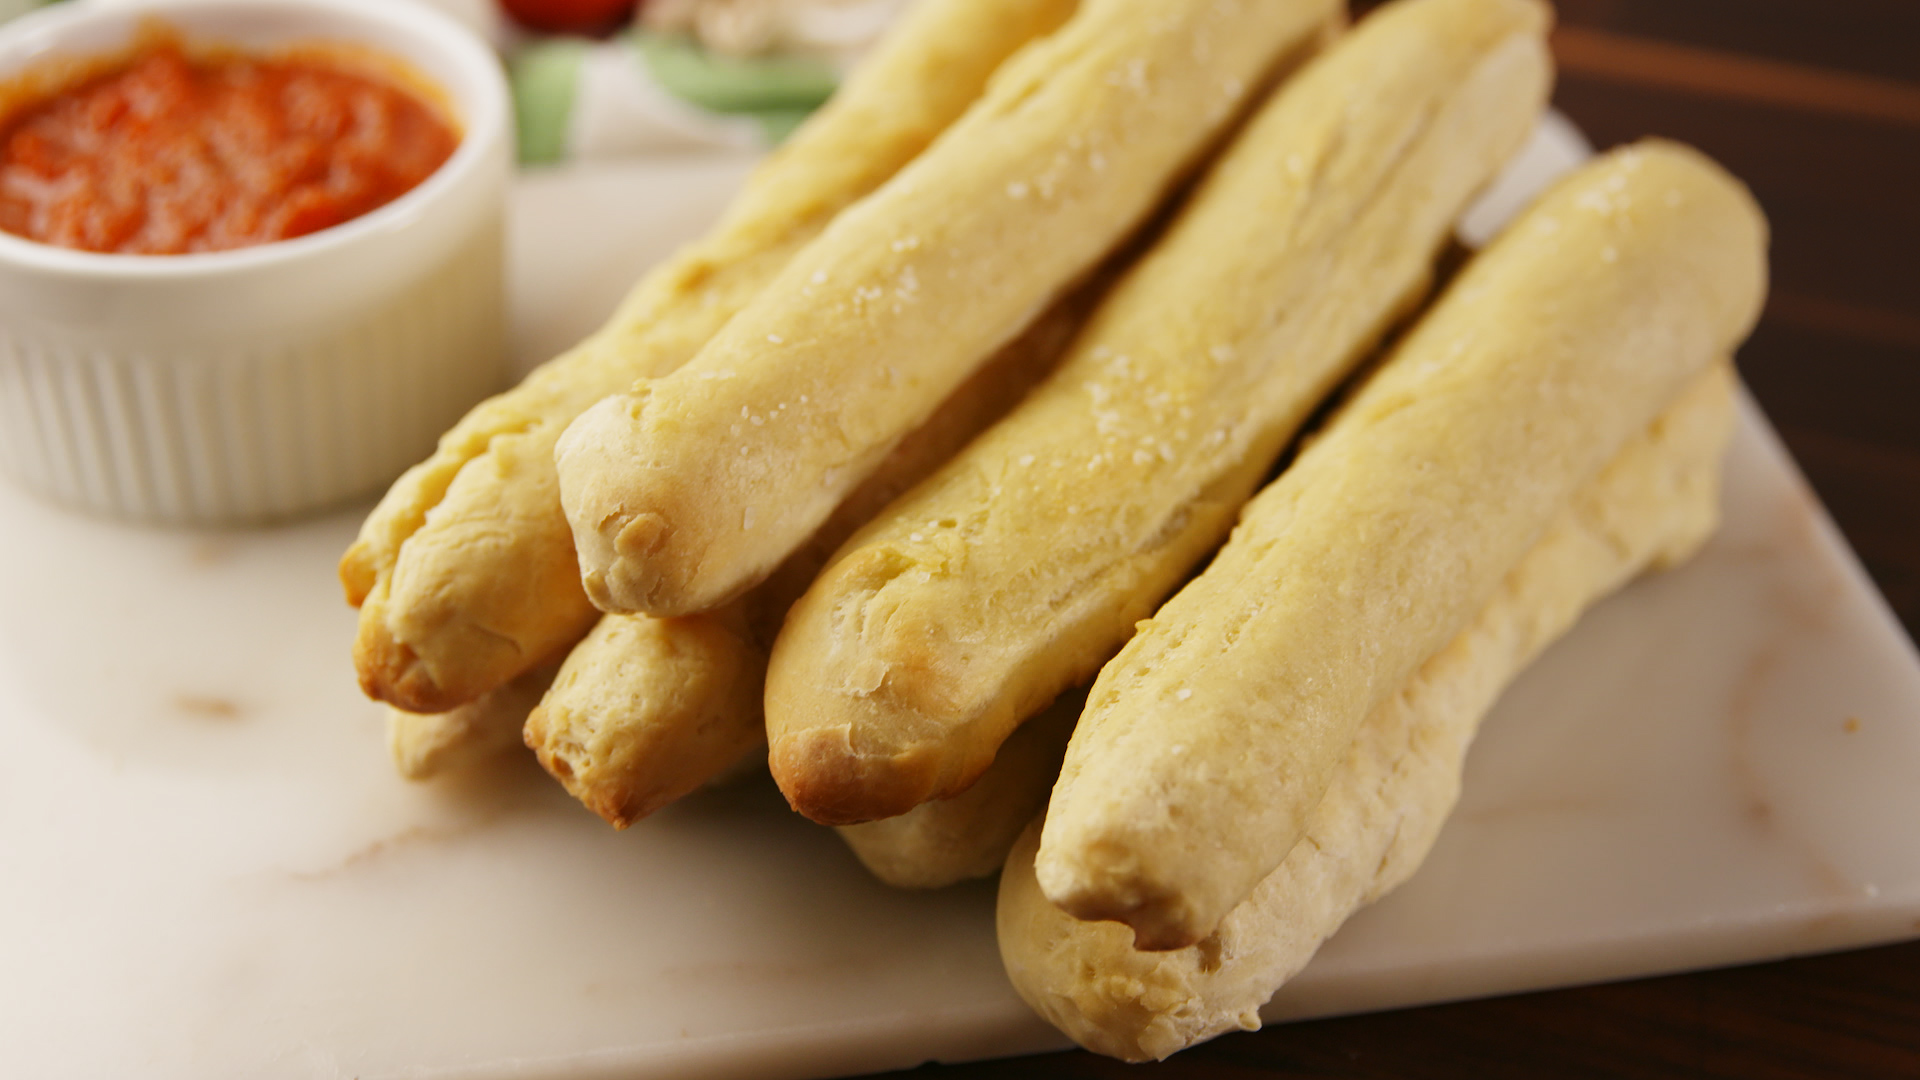 Best Copycat Olive Garden Breadstick Recipe - How to Make Copycat ...